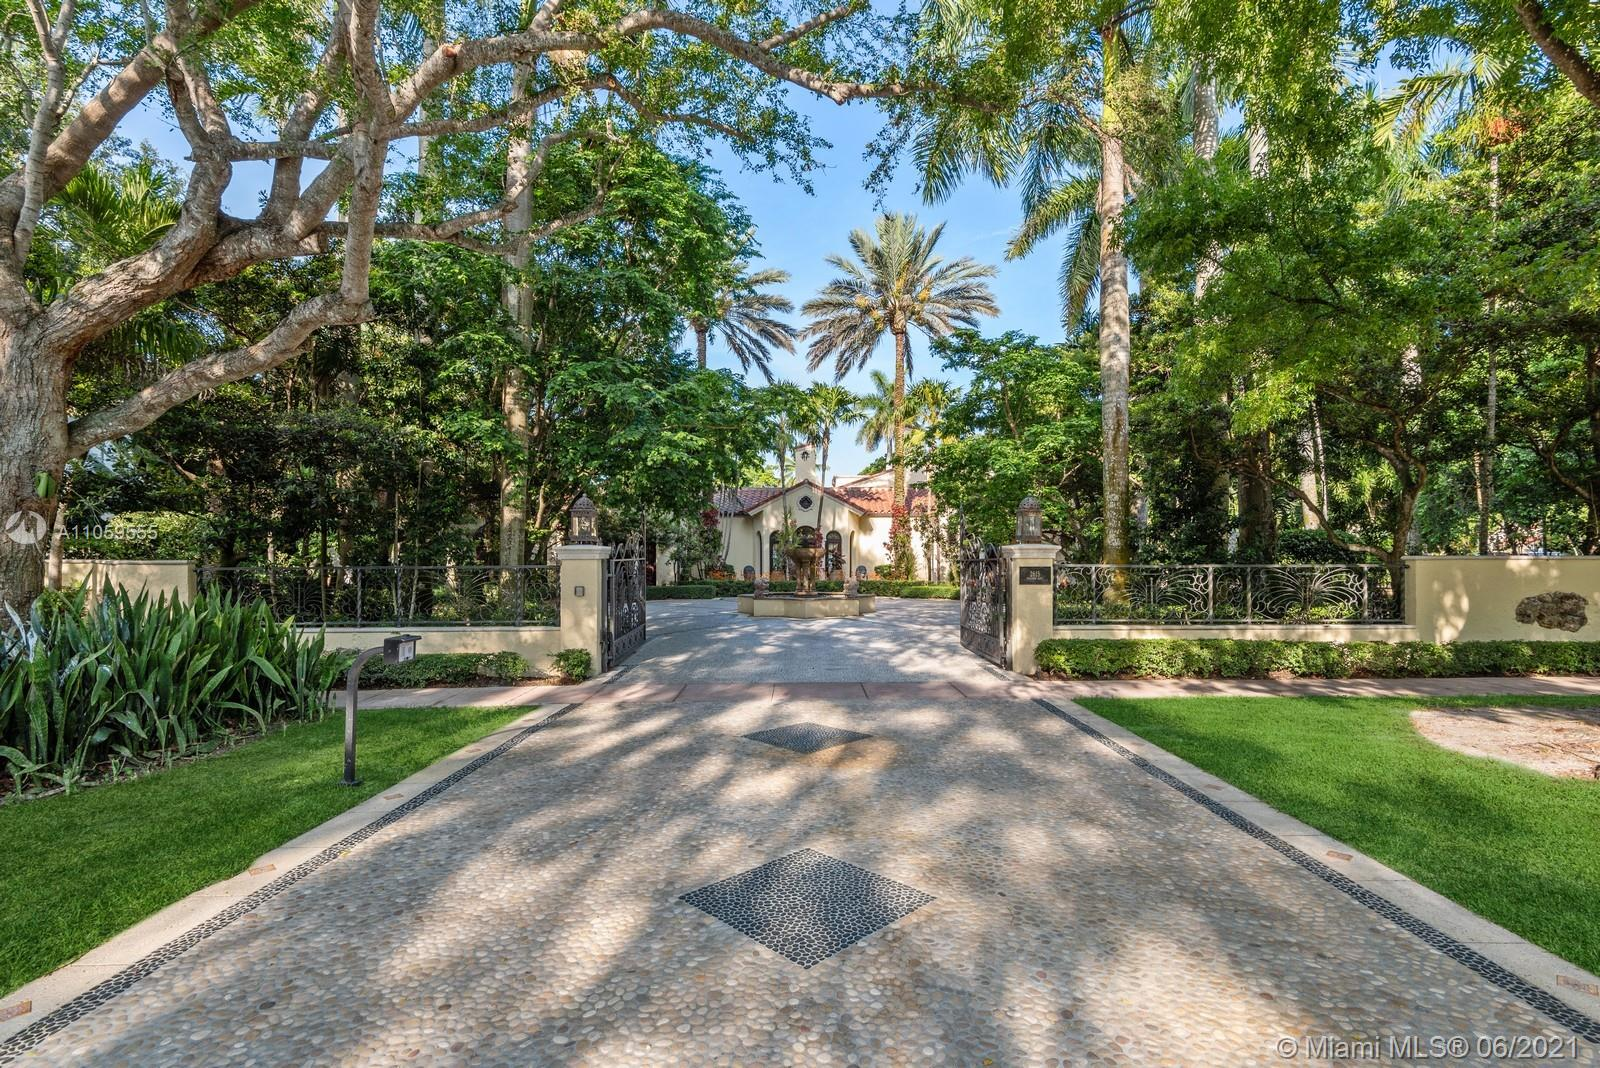 Spectacular Property Heart of Historical Coral Gables! Masterpiece with intricate layers attention to details.  Stainless Glass, iron work, wood beams. Corner lot 26,375 SF. Gated West Granada entrance circular mosaic stone driveway fountain. Gated South entrance driveway & garage. Breathtaking Gardens. Coral Rock Grotto, two Koi ponds & waterfall. Lighting, Generator, Loggia, Pool, Gazebo  & BBQ. Interior STUNNING! Six Bedrooms five Bathrooms two Half Baths & Gallery. High ceilings, ceiling wood beams, two fireplaces, Venetian Plaster & textured paint through out, wood arches mosaic tiles. Basement movie theatre & wine cellar. Walk to Historical Biltmore Hotel Golf & Tennis, Venetian Pool, Miracle Mile, Granada Golf Course, De Soto Fountain. Amazing Elements make this a Blissful Property!